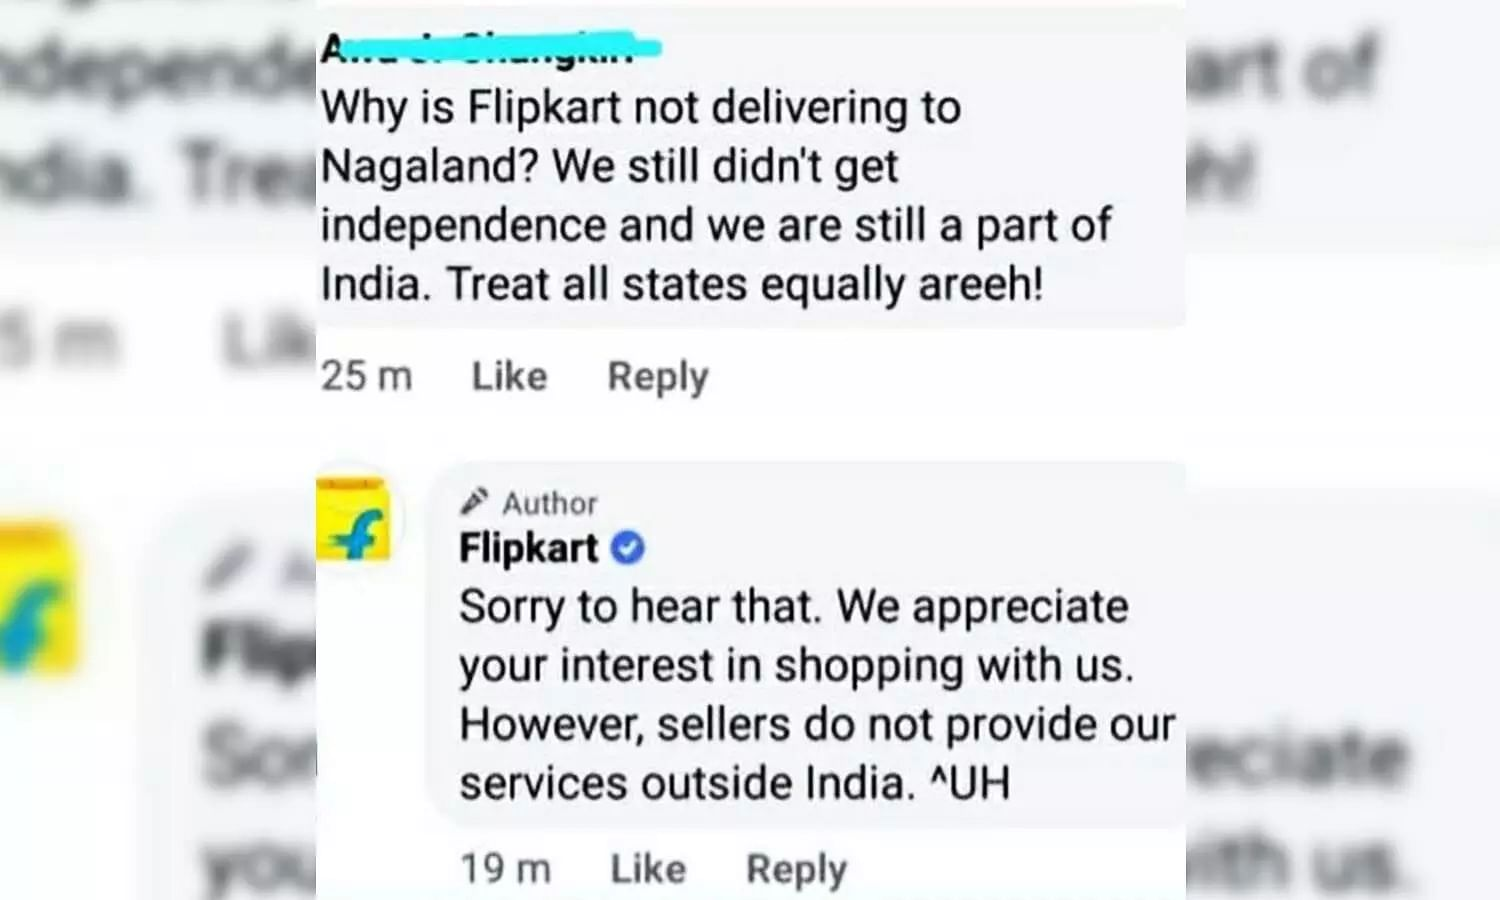 Nagaland is an independent state!